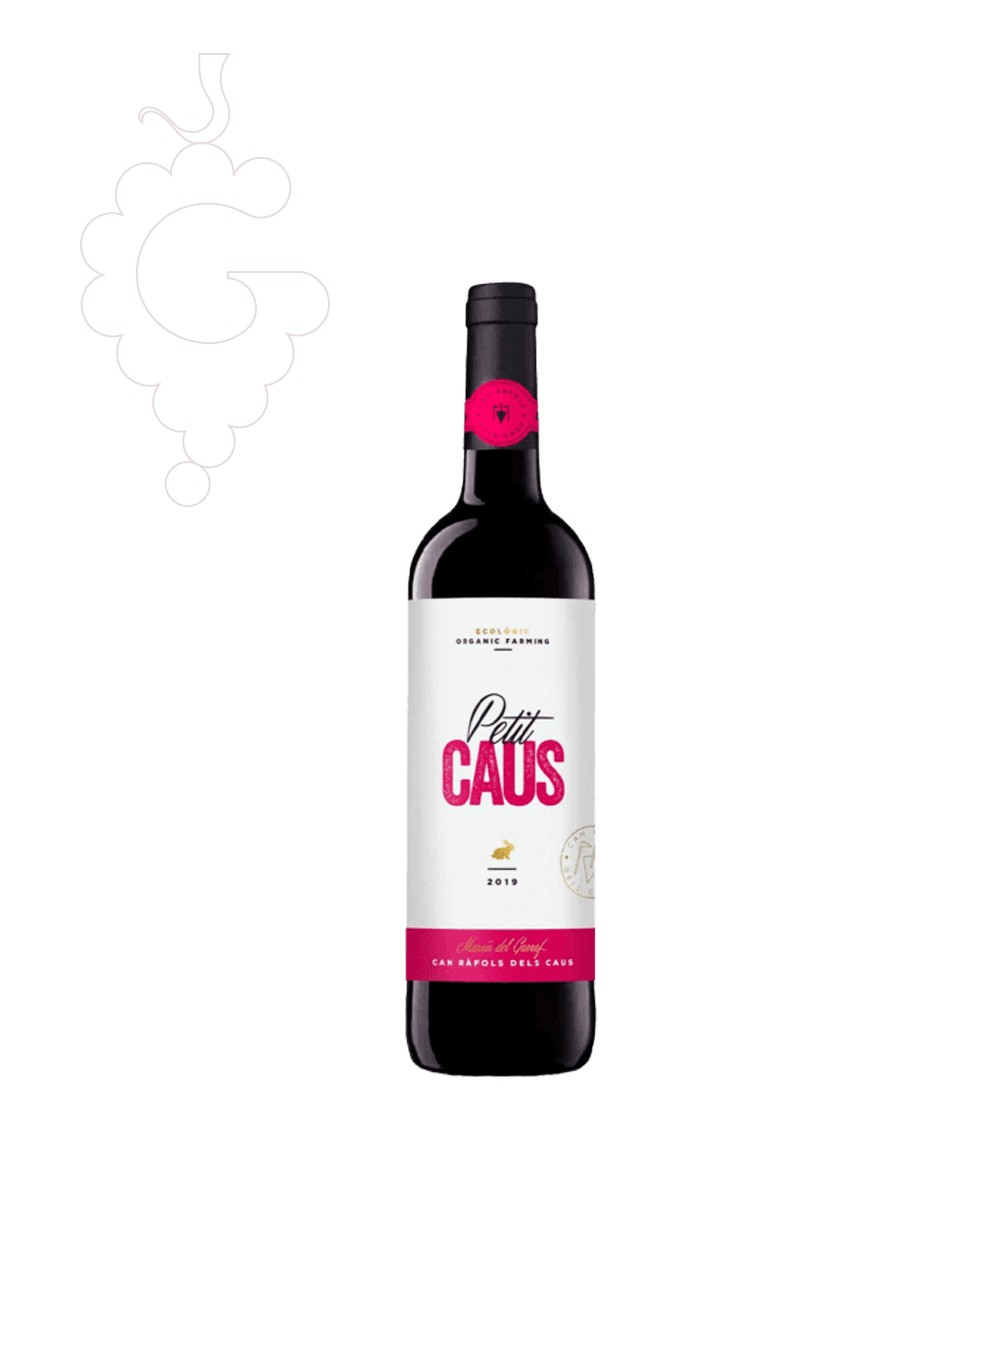 Photo Petit Caus Negre Collita red wine